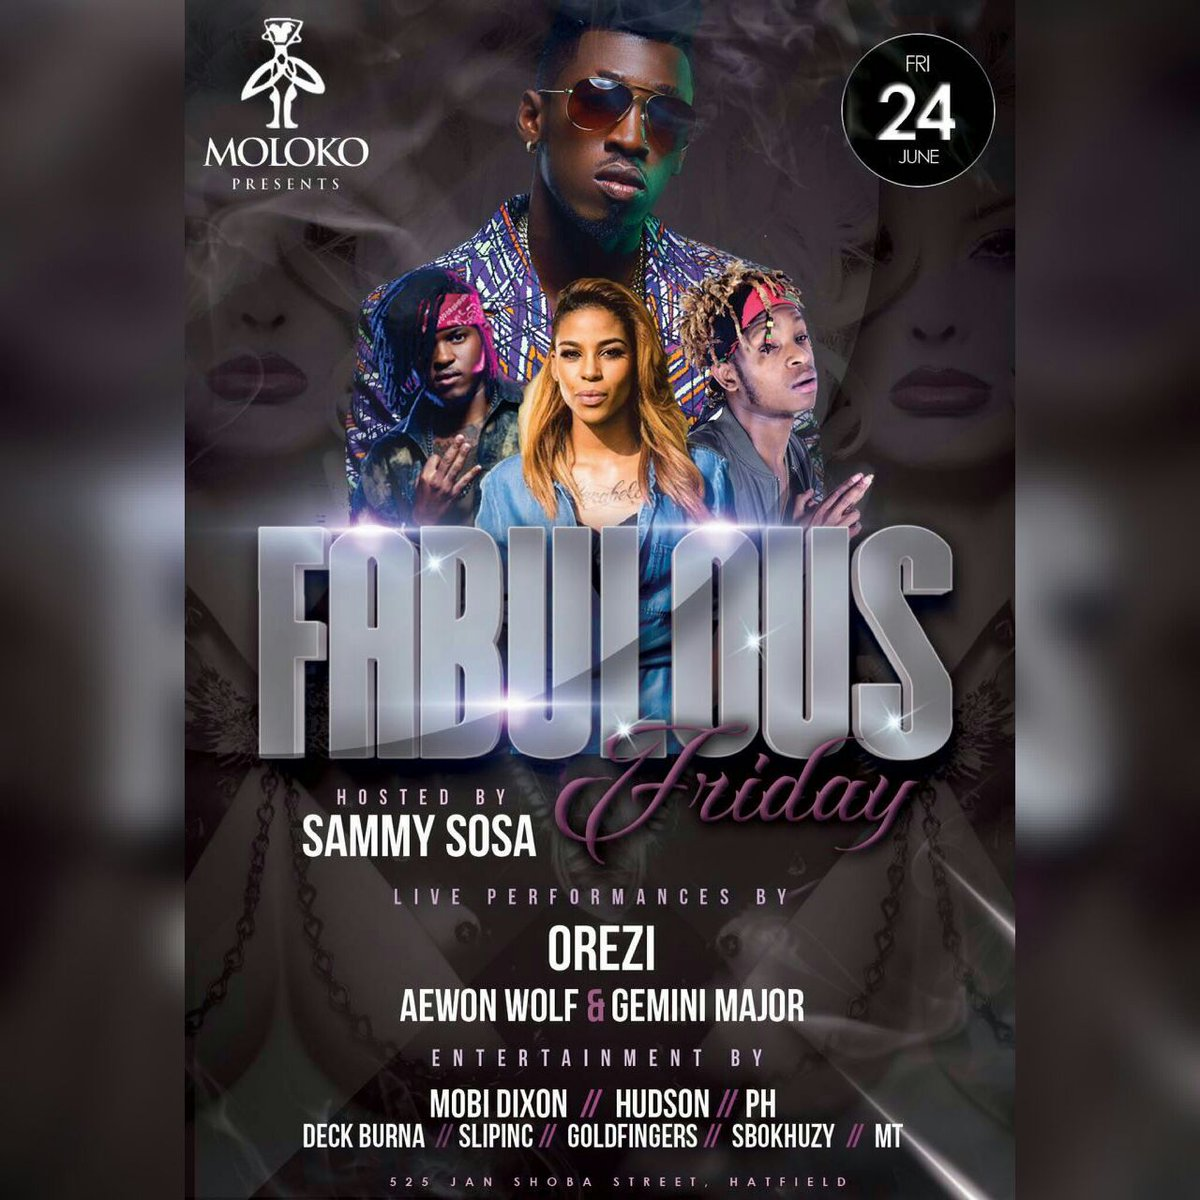 #FabulousFriday @molokopretoria @alhajiorezii LIVE on stage with @AewonWolf & @GeminiMajor hosted by @sam_lehoko https://t.co/dc1BZFx618